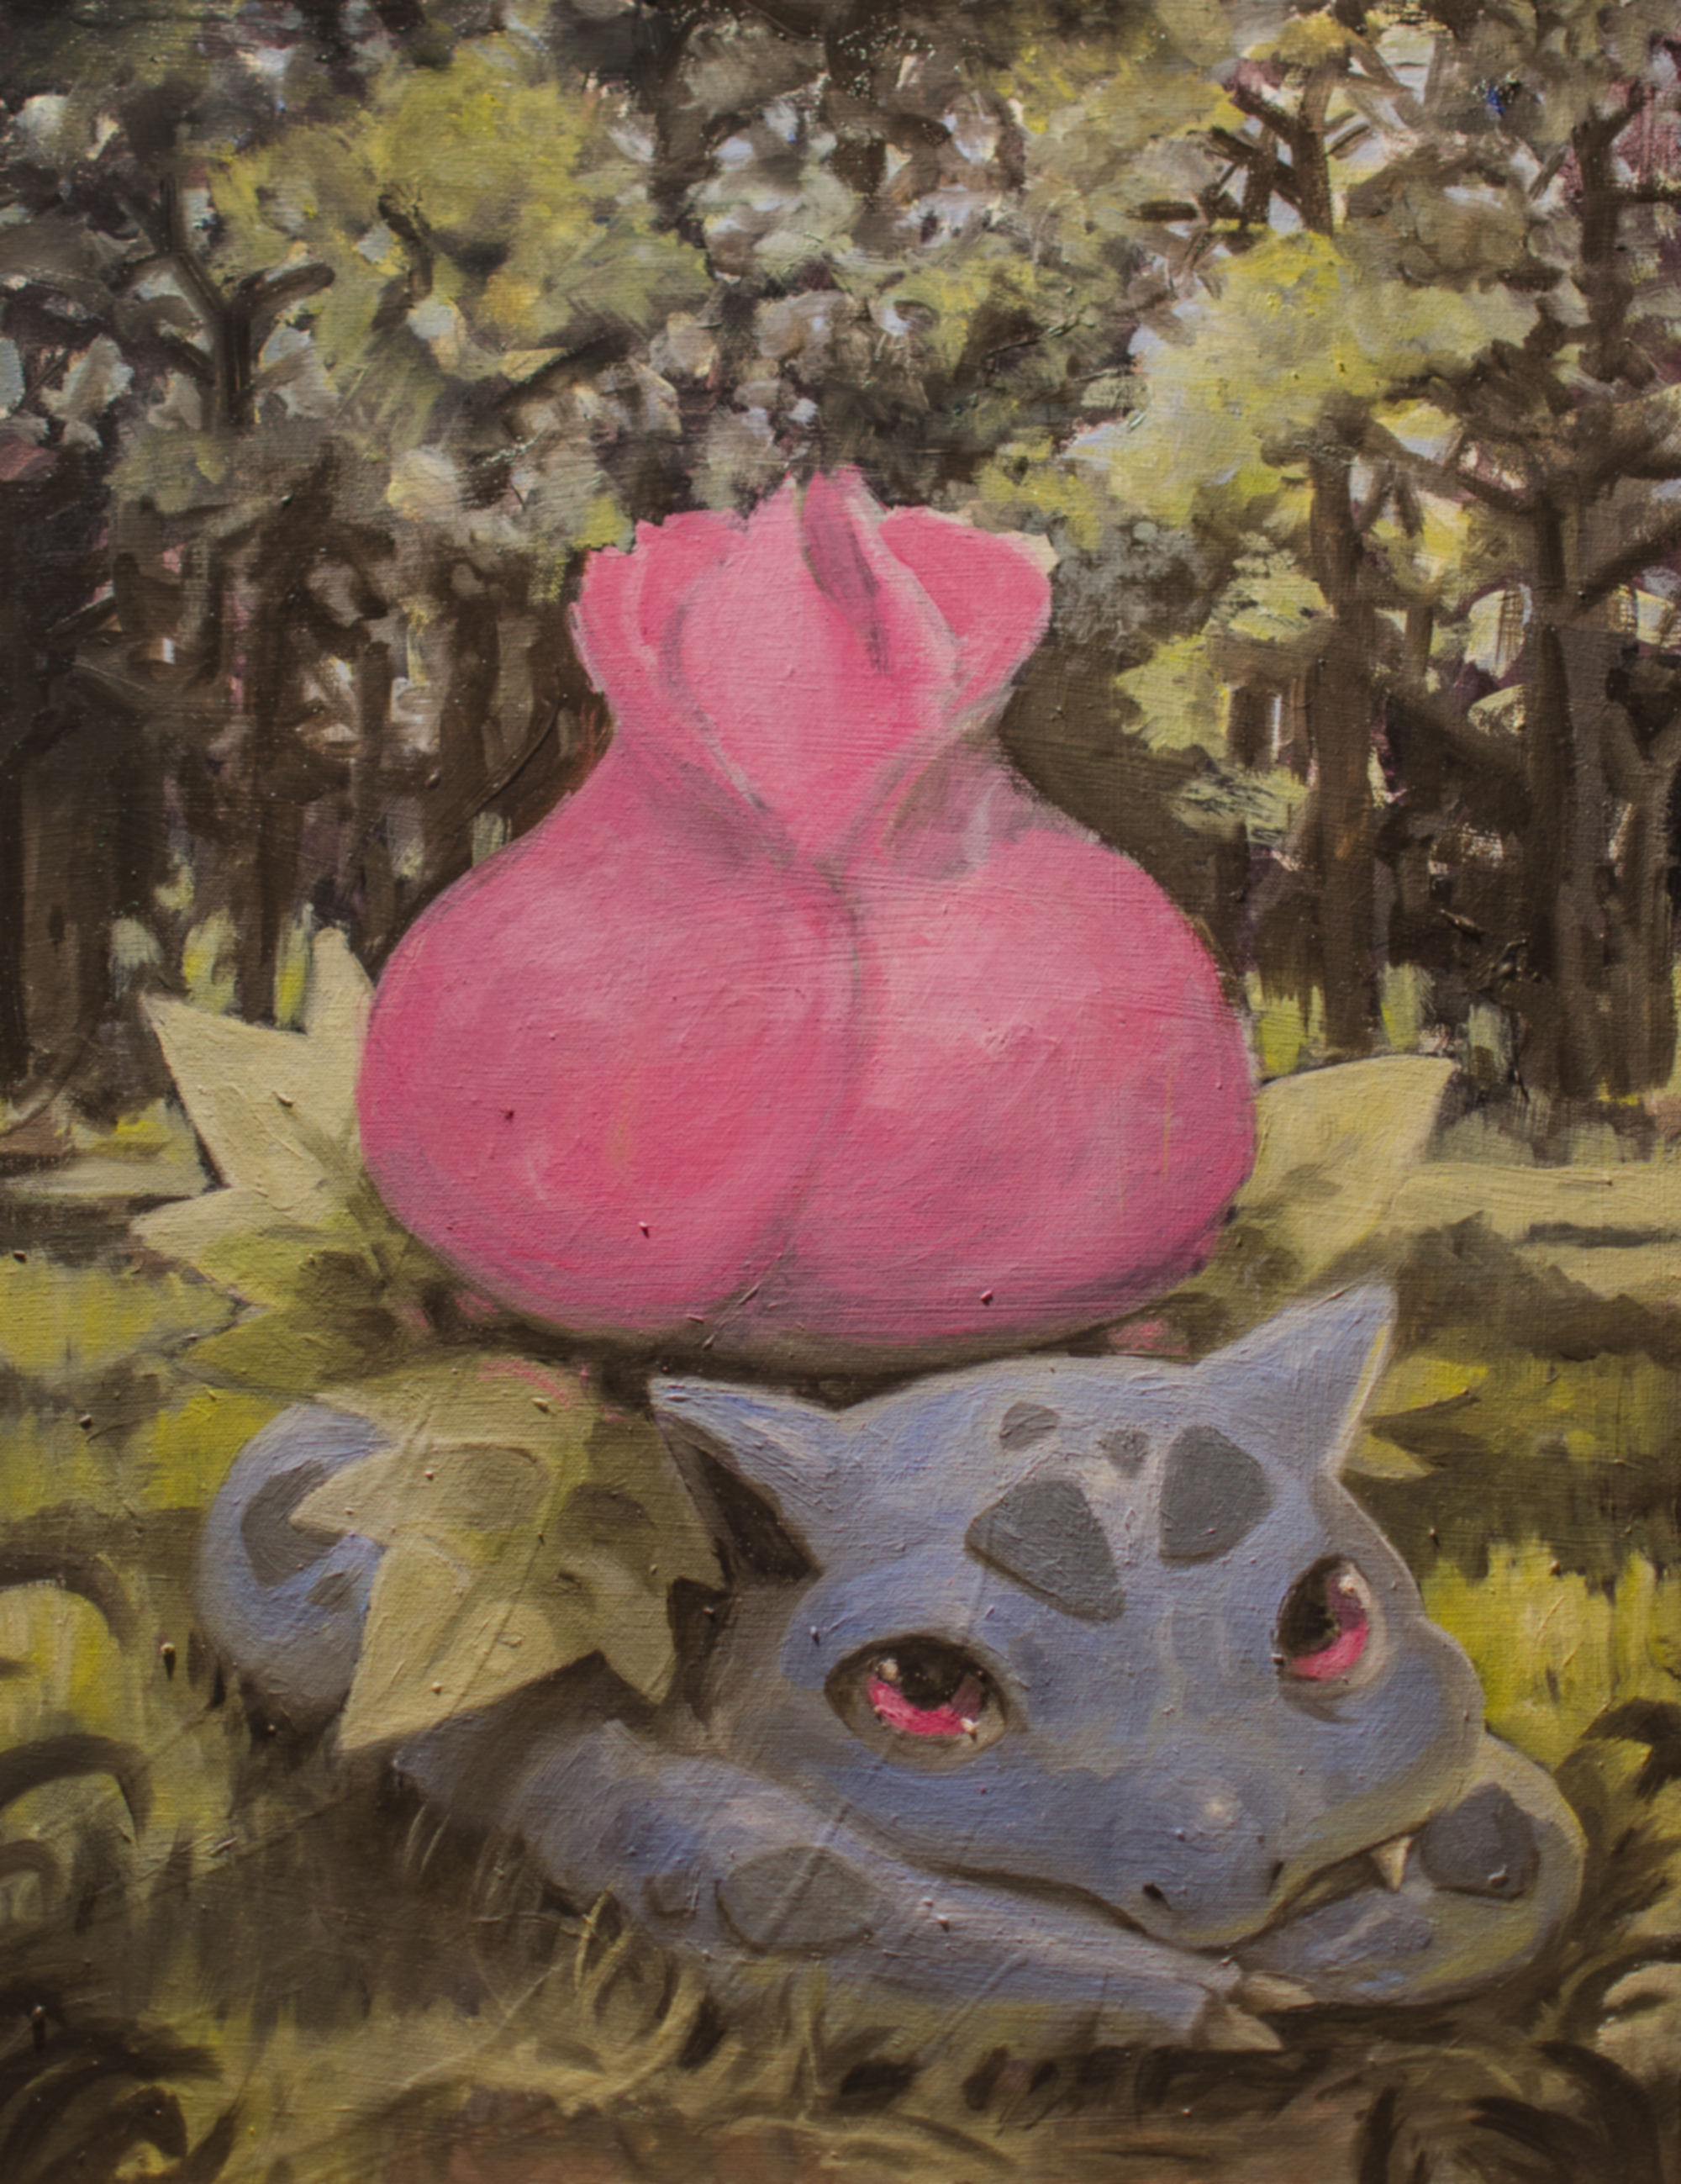 Ivysaur: Acrylic and oil on canvas. Inspired by gen III's Pokedex entry: